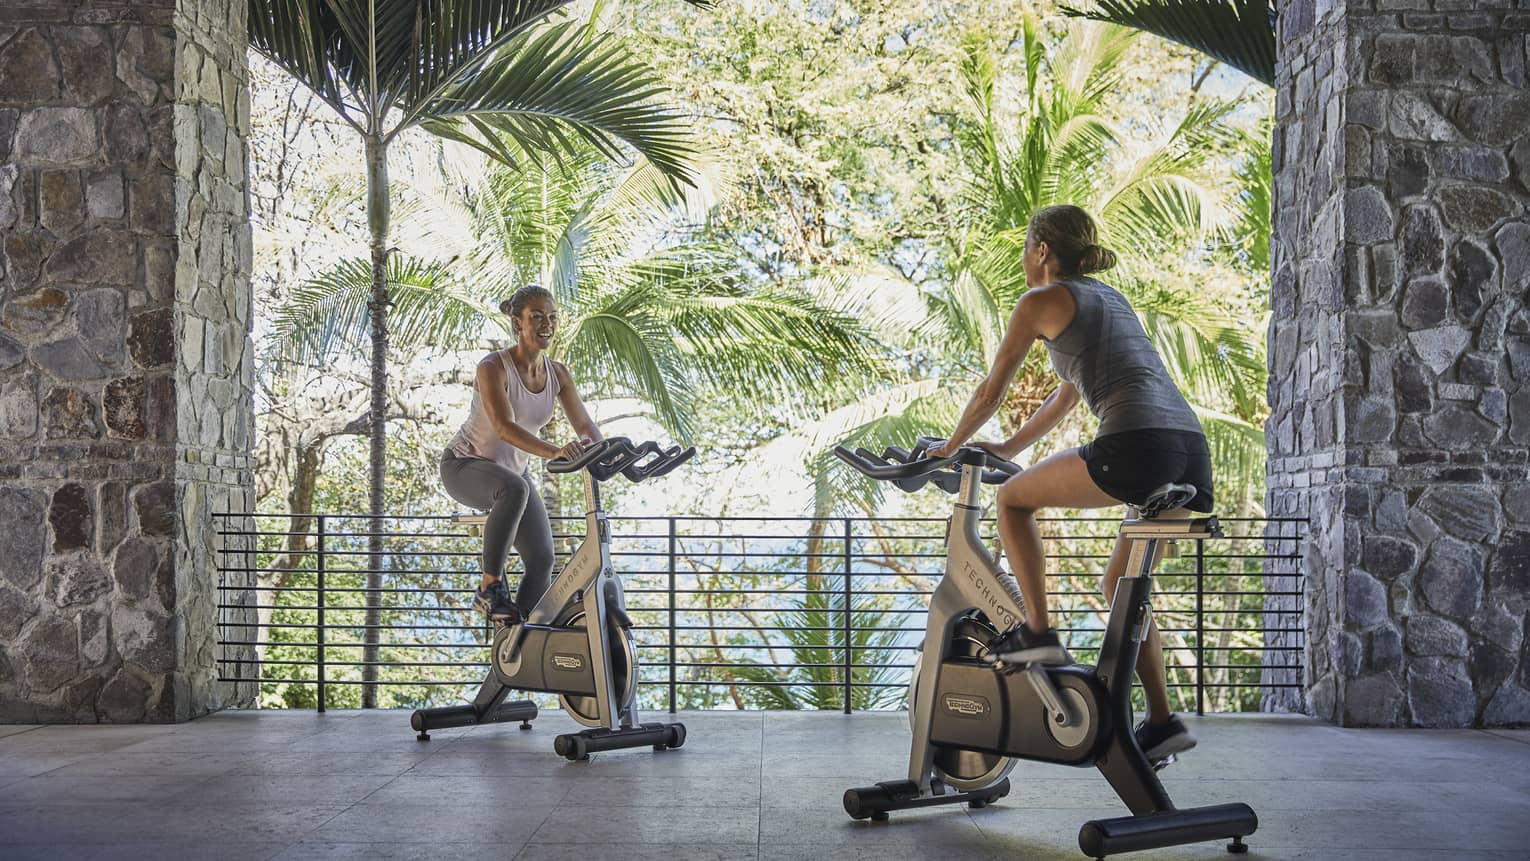 Two women on cardio bike machines face each other on stone patio in open-air fitness centre